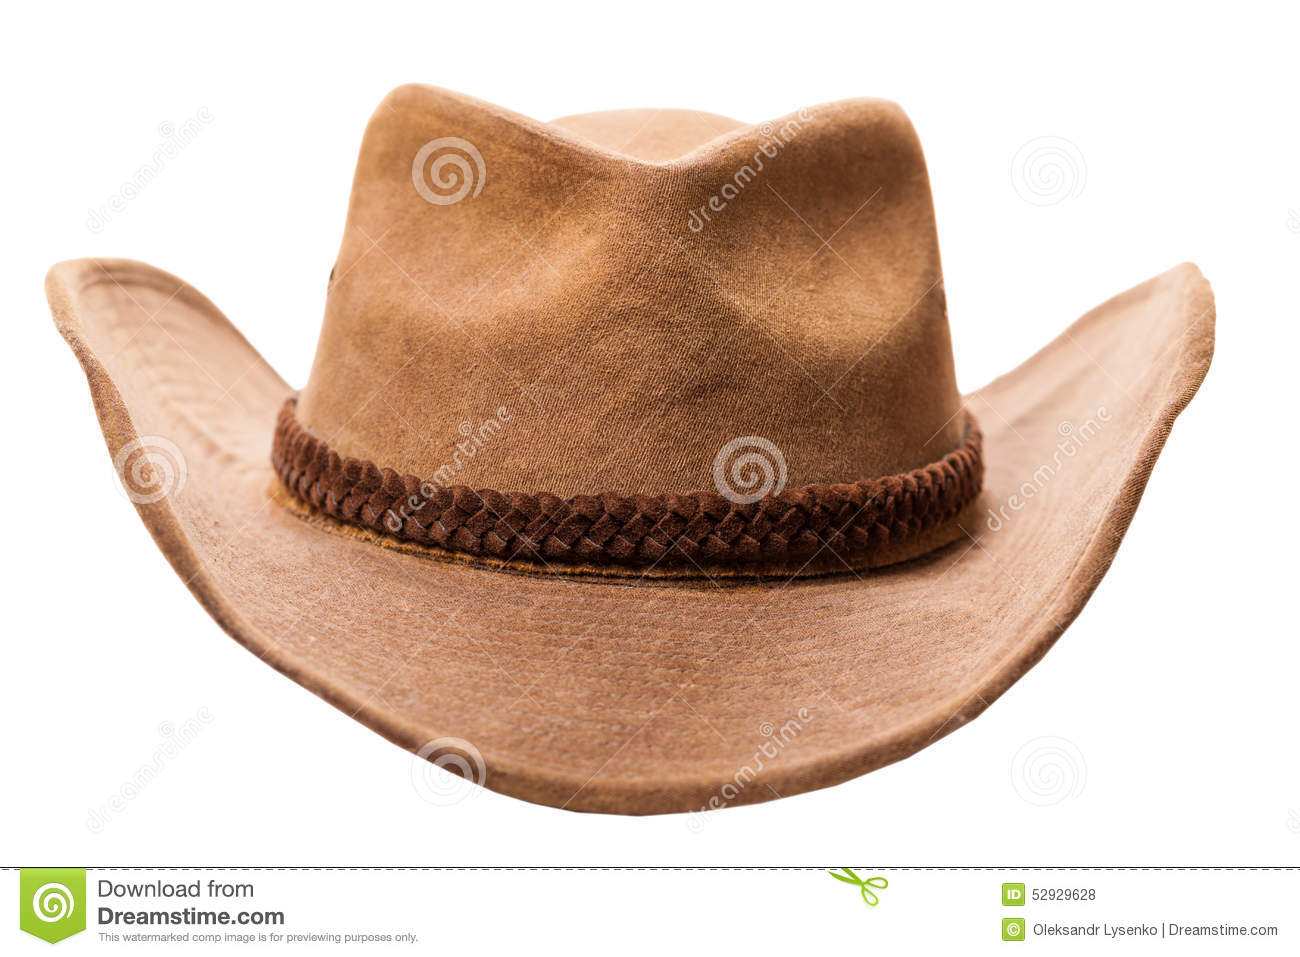 582f2cbab7709 Leather cowboy hat isolated on a white background